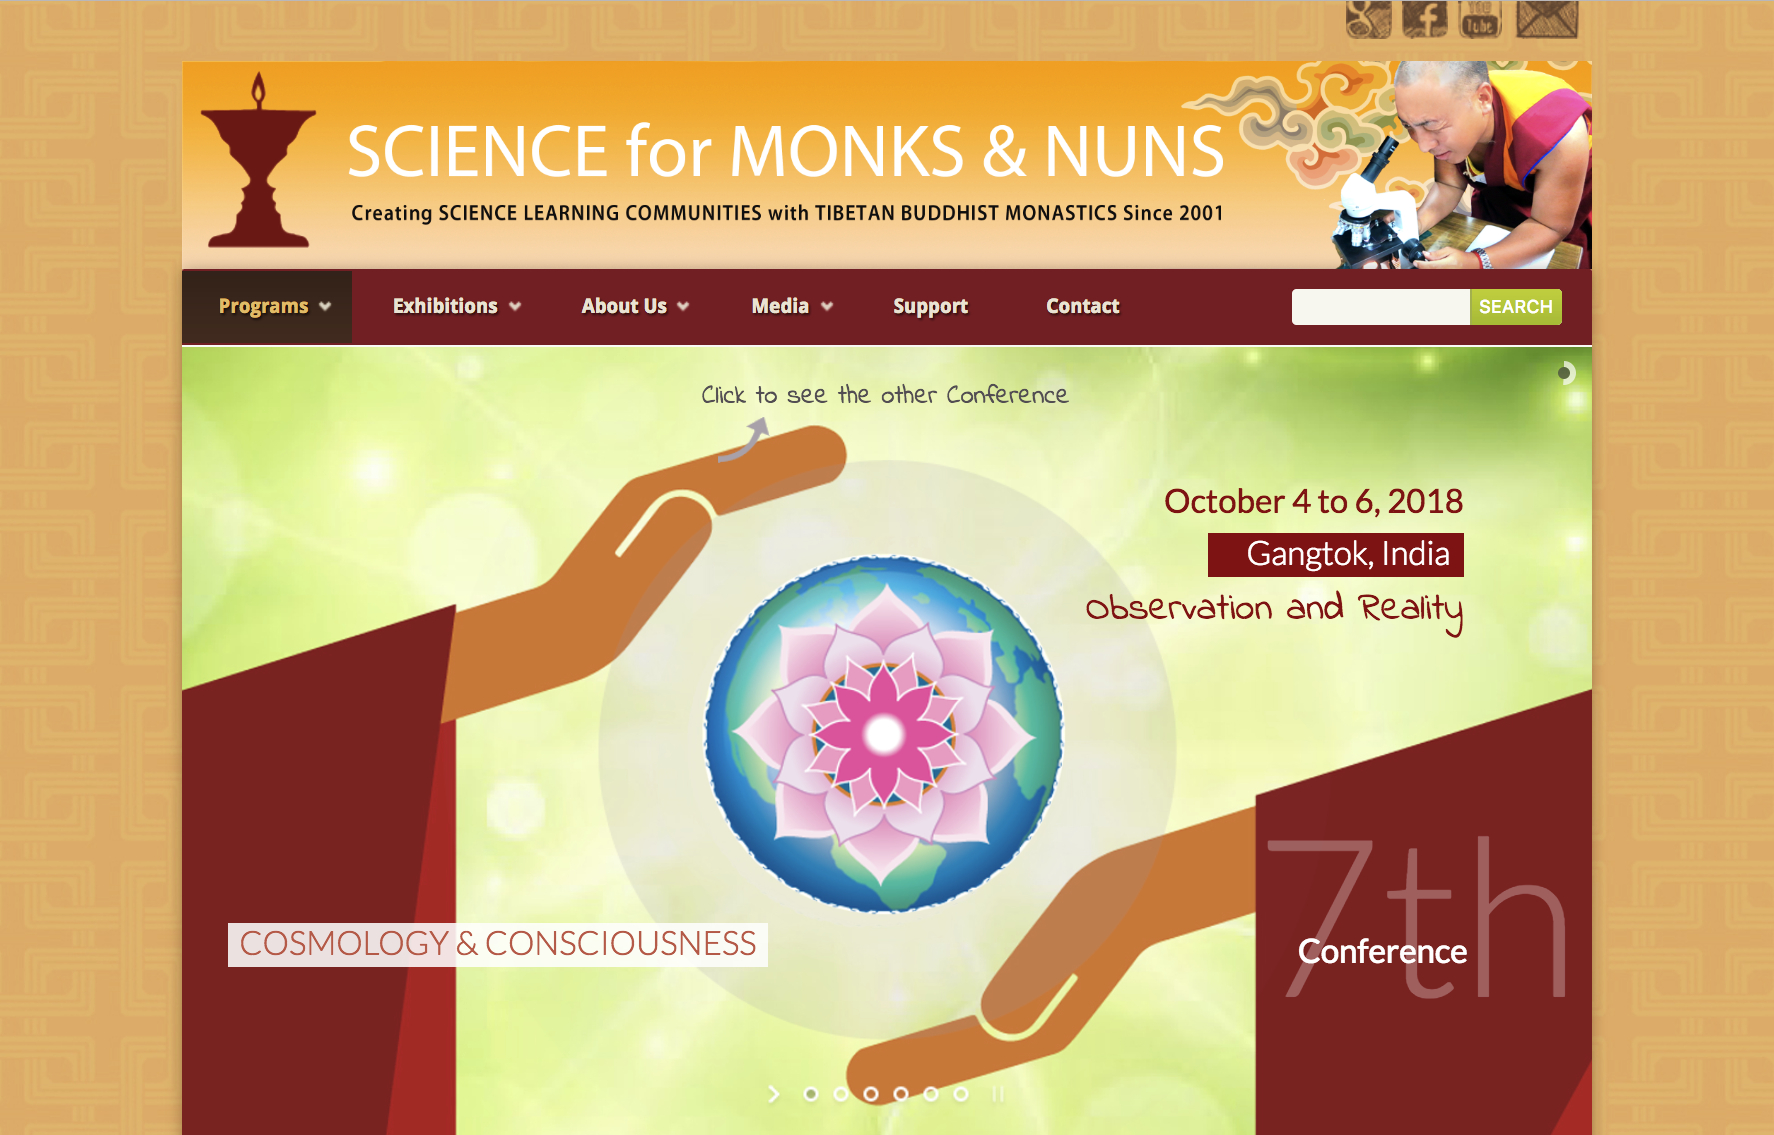 scienceformonks.org